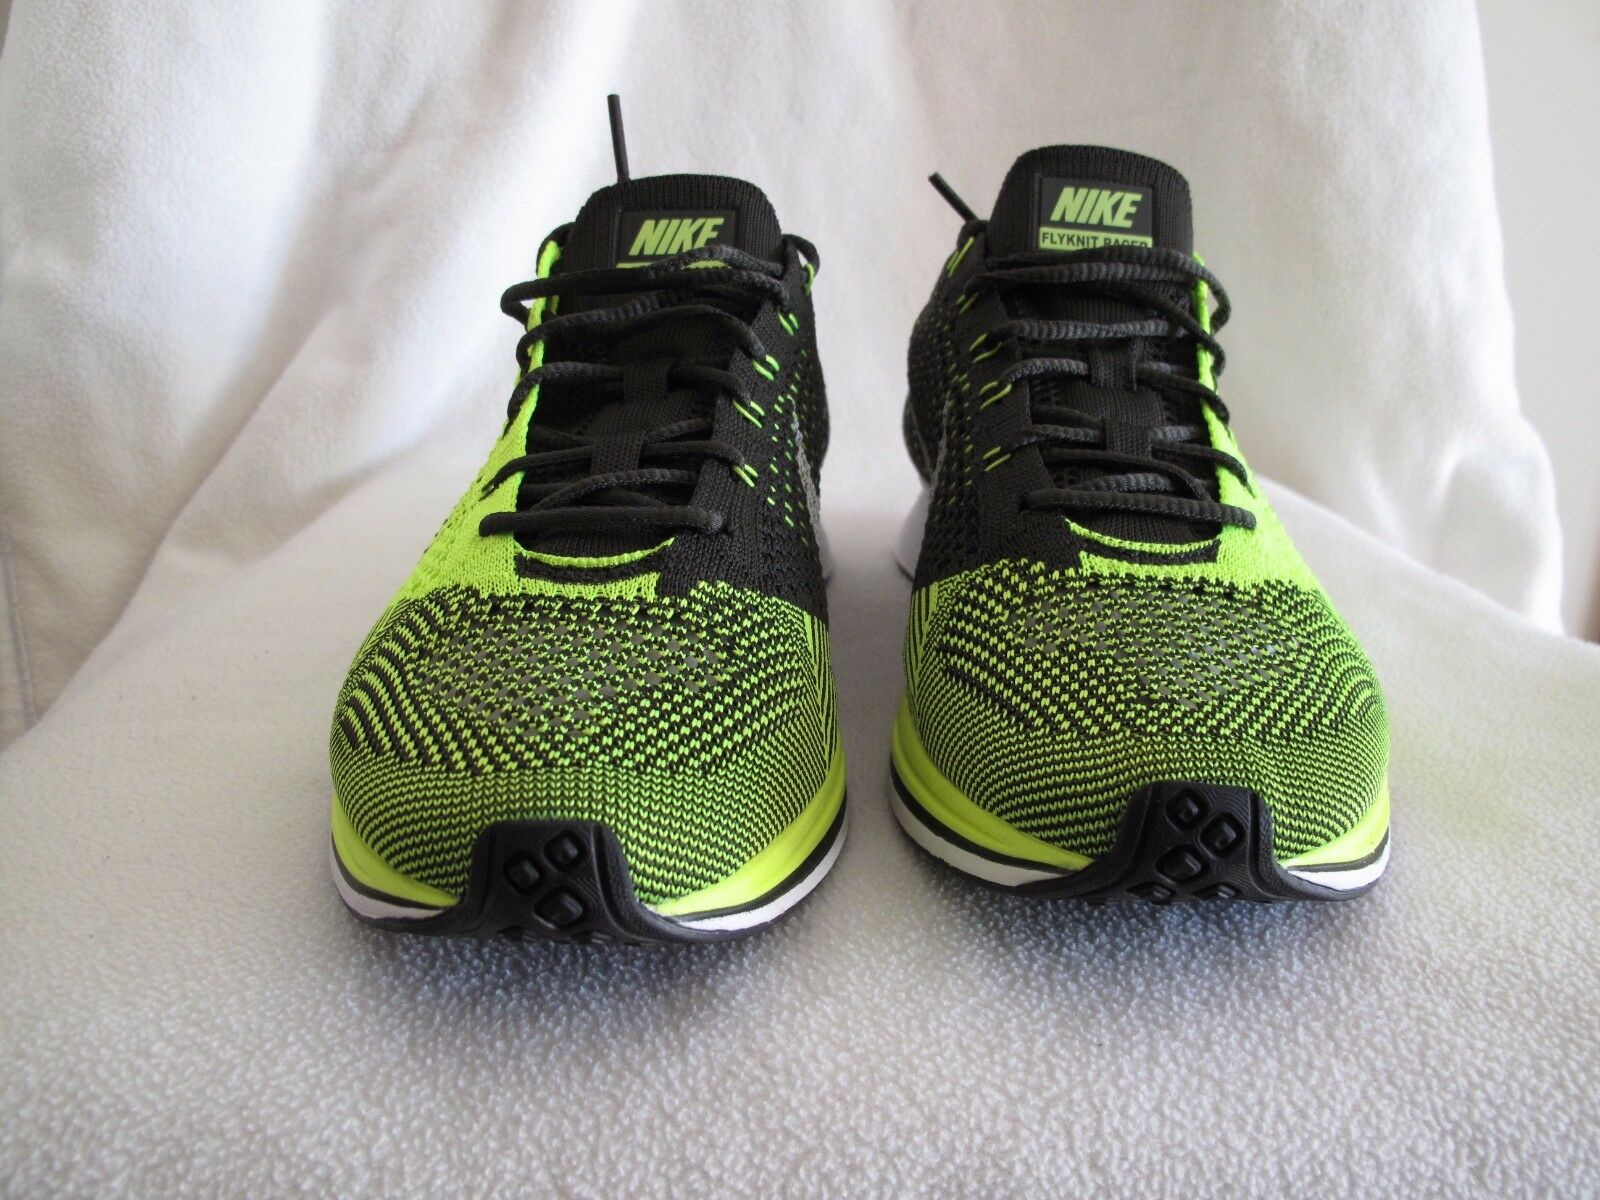 Nike Flyknit Racer 526628721 Volt Black Sequoia, size US 9,5 RARE 2012